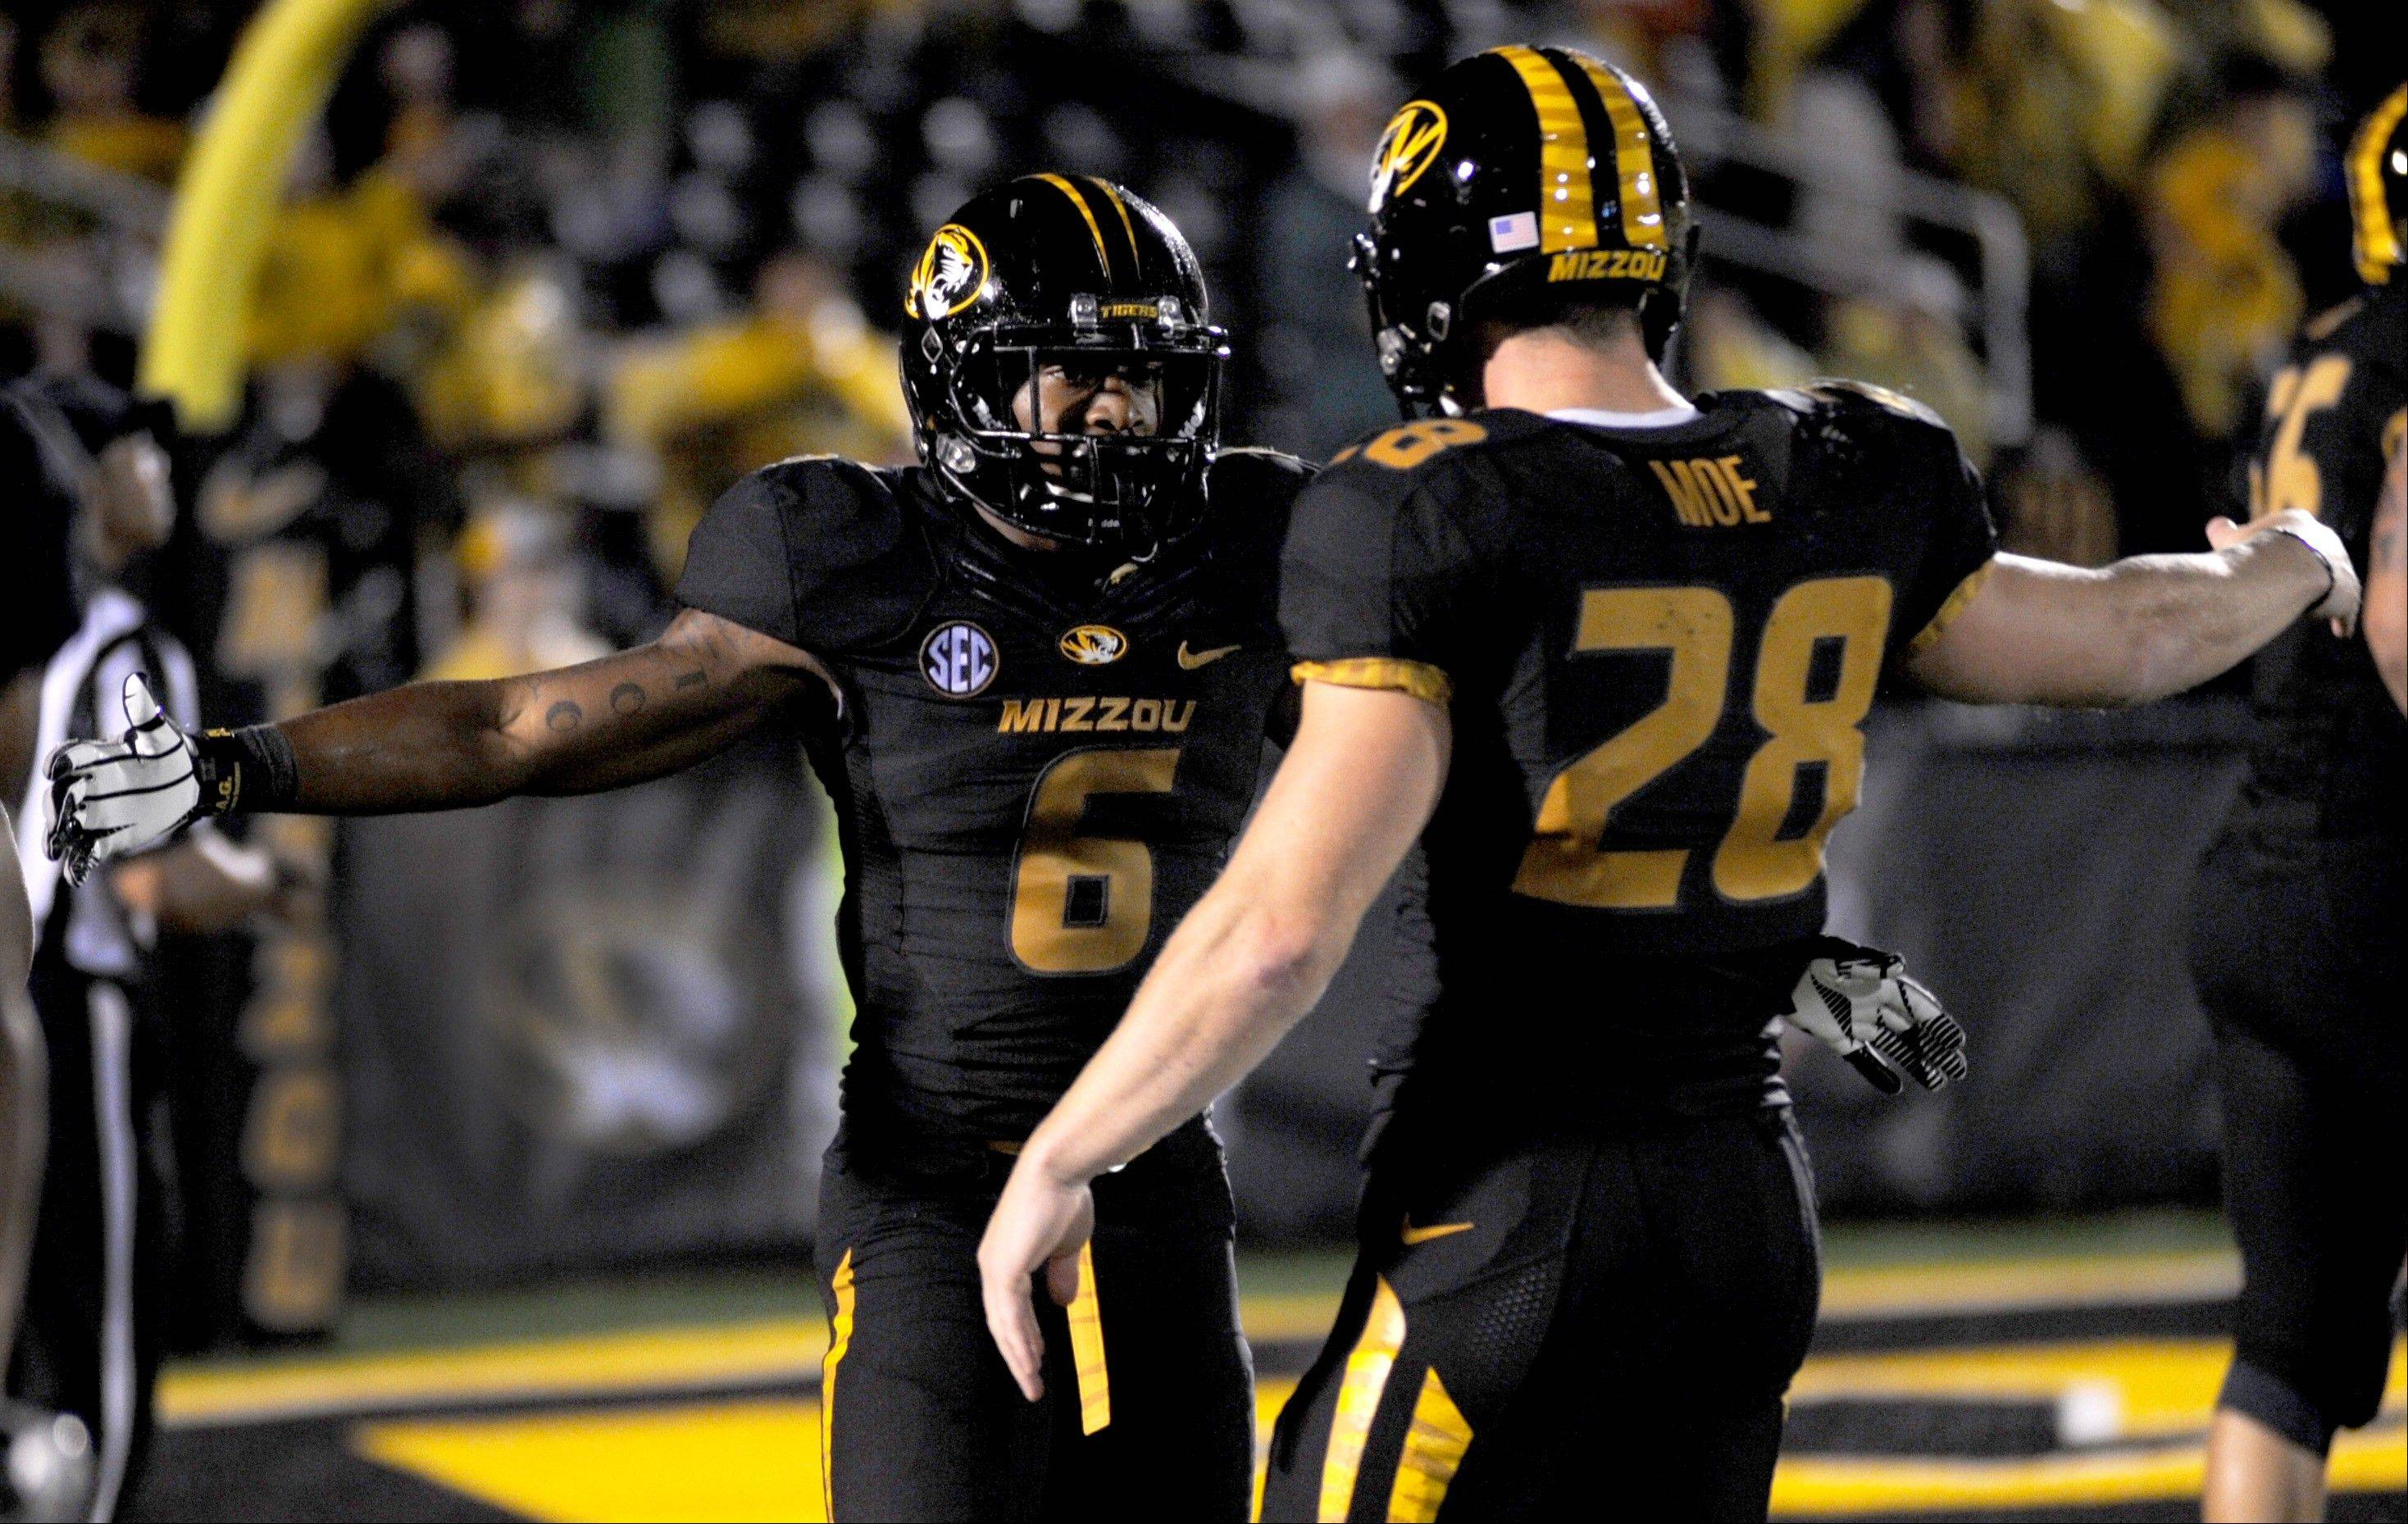 Missouri's Marcus Murphy, left, is congratulated by teammate T.J. Moe for running a punt back 72 yards for a touchdown last Saturday at home against Southeastern Louisiana.